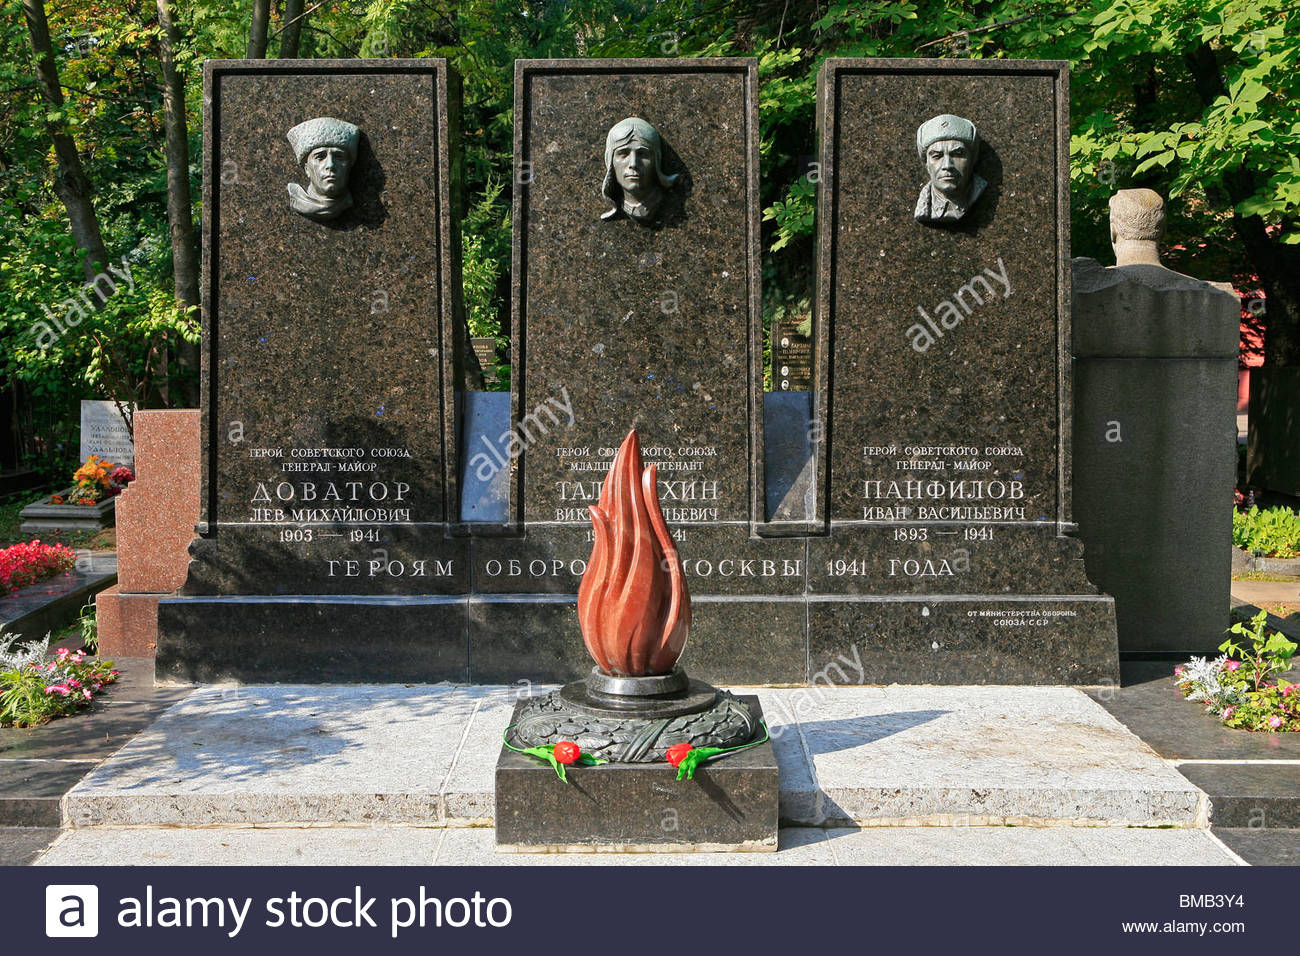 Novodevichy Cemetery Moscow, Grave and monument to the Defenders of Moscow at Novodevichy ...